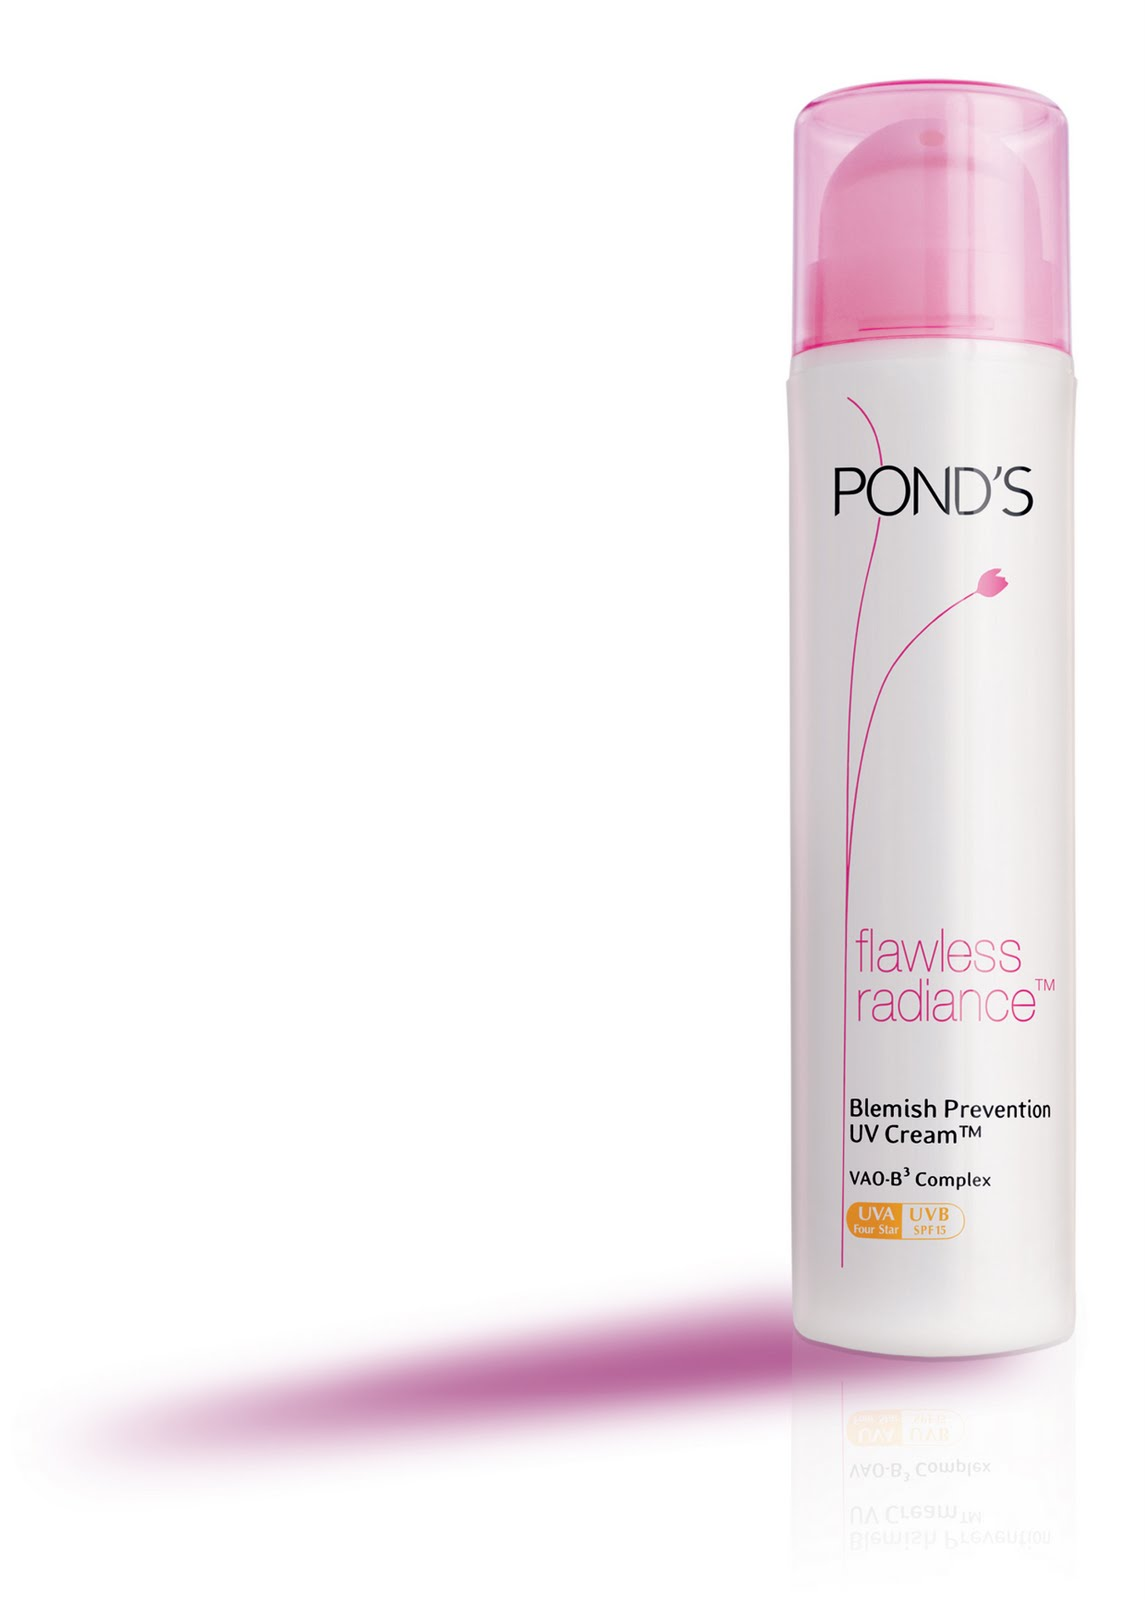 Ponds adds to its flawless radiance range with new uv for Ponds products